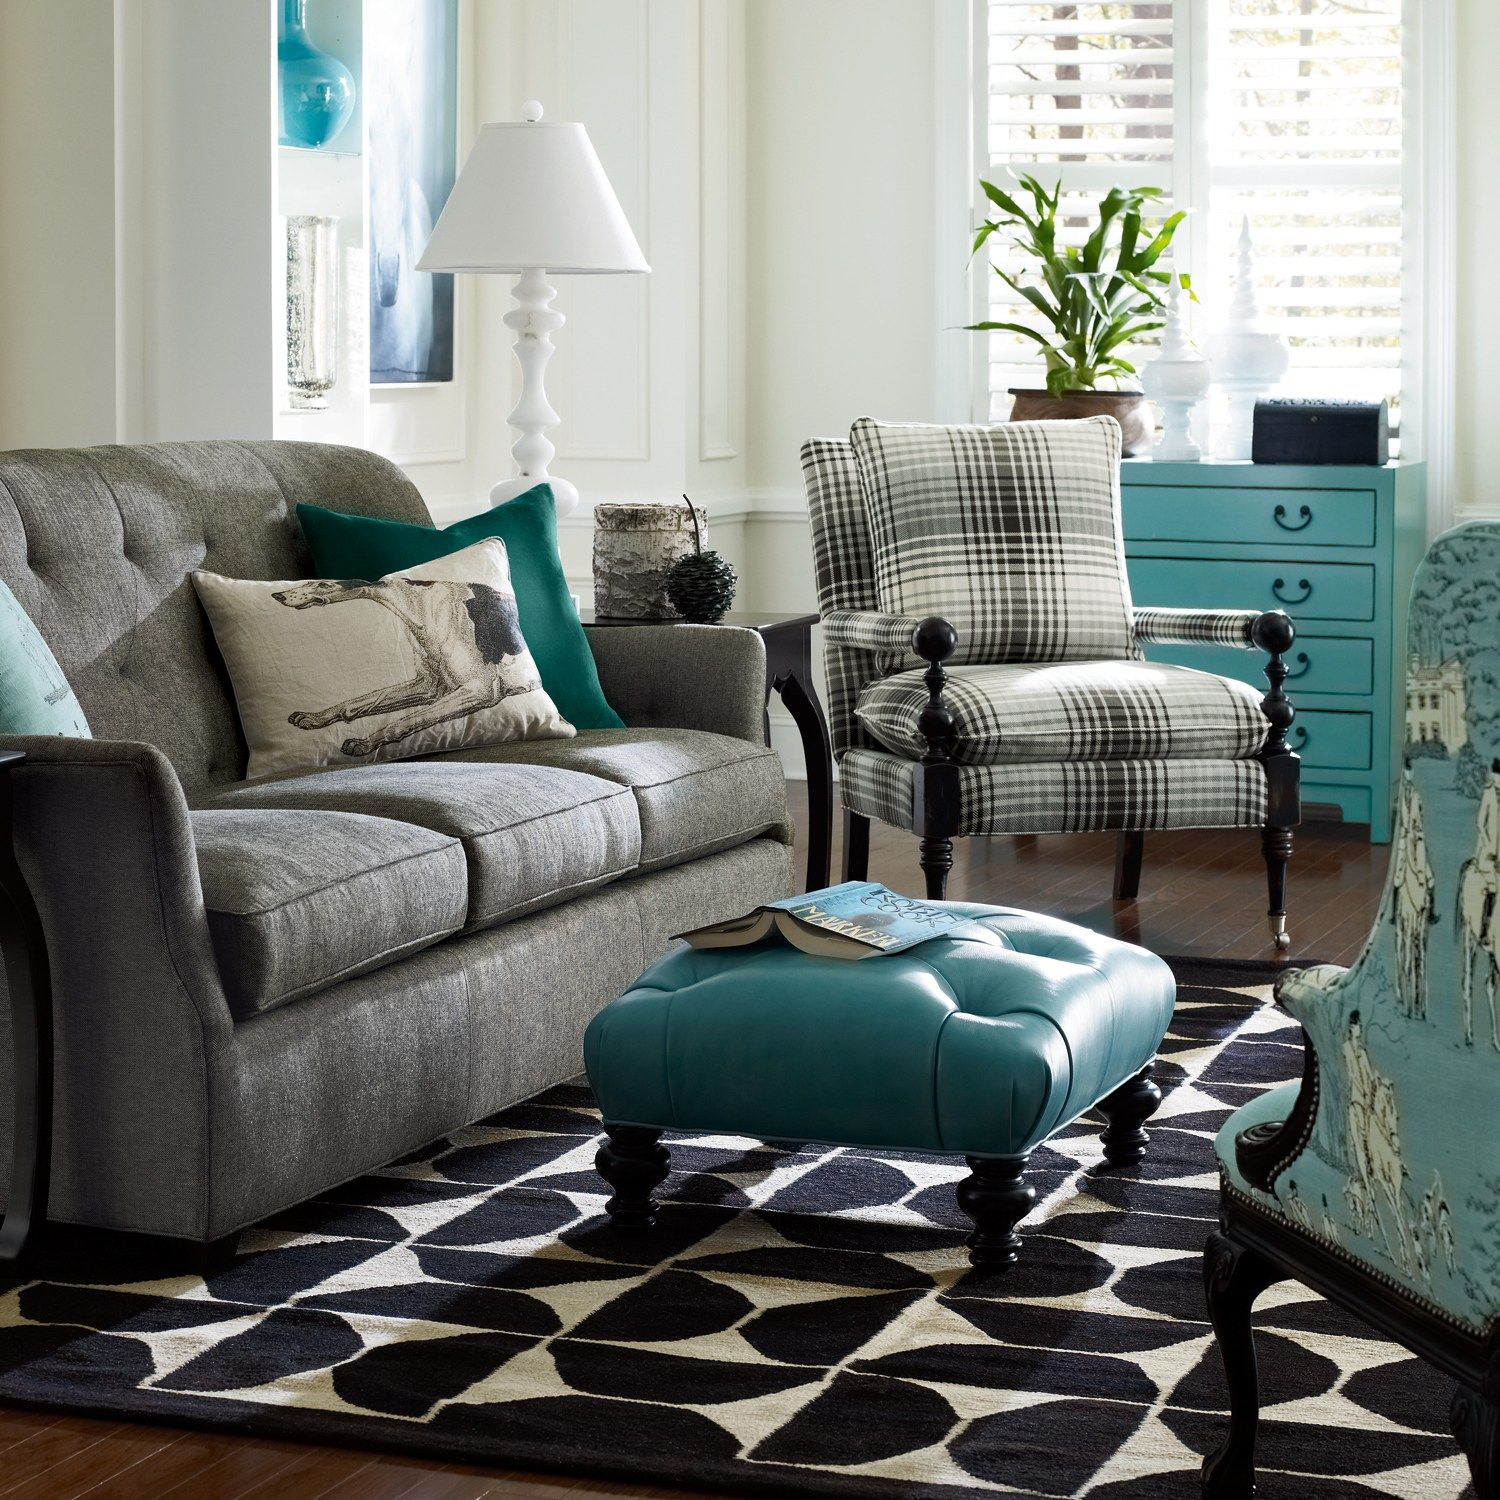 Teal Accents Living Room Small Rooms Ideas Modern This Is Totally The Look I Want In My Family Got Gray Couch And Walls Just Need All